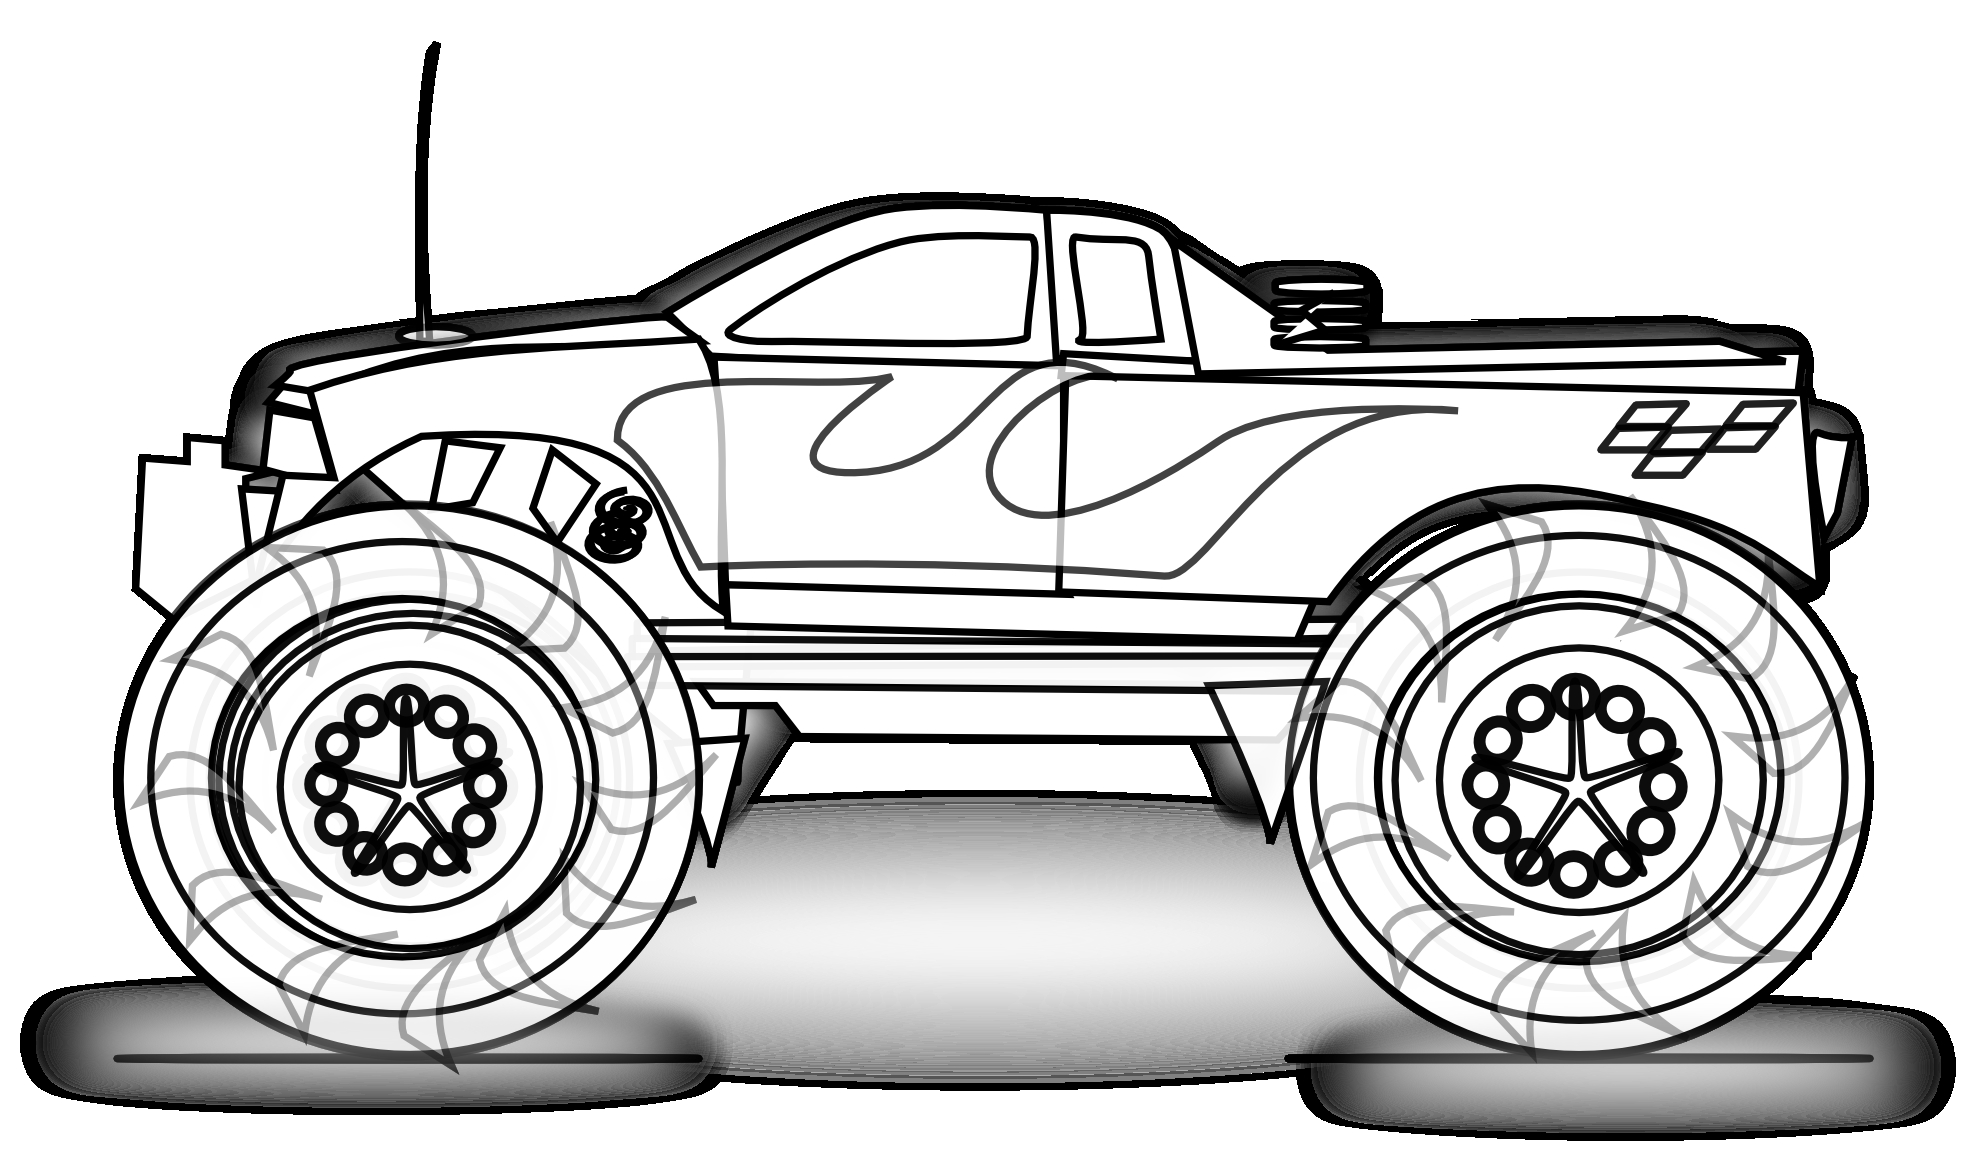 1969x1170 New Rc Toys Coloring Pages Design Printable Coloring Sheet